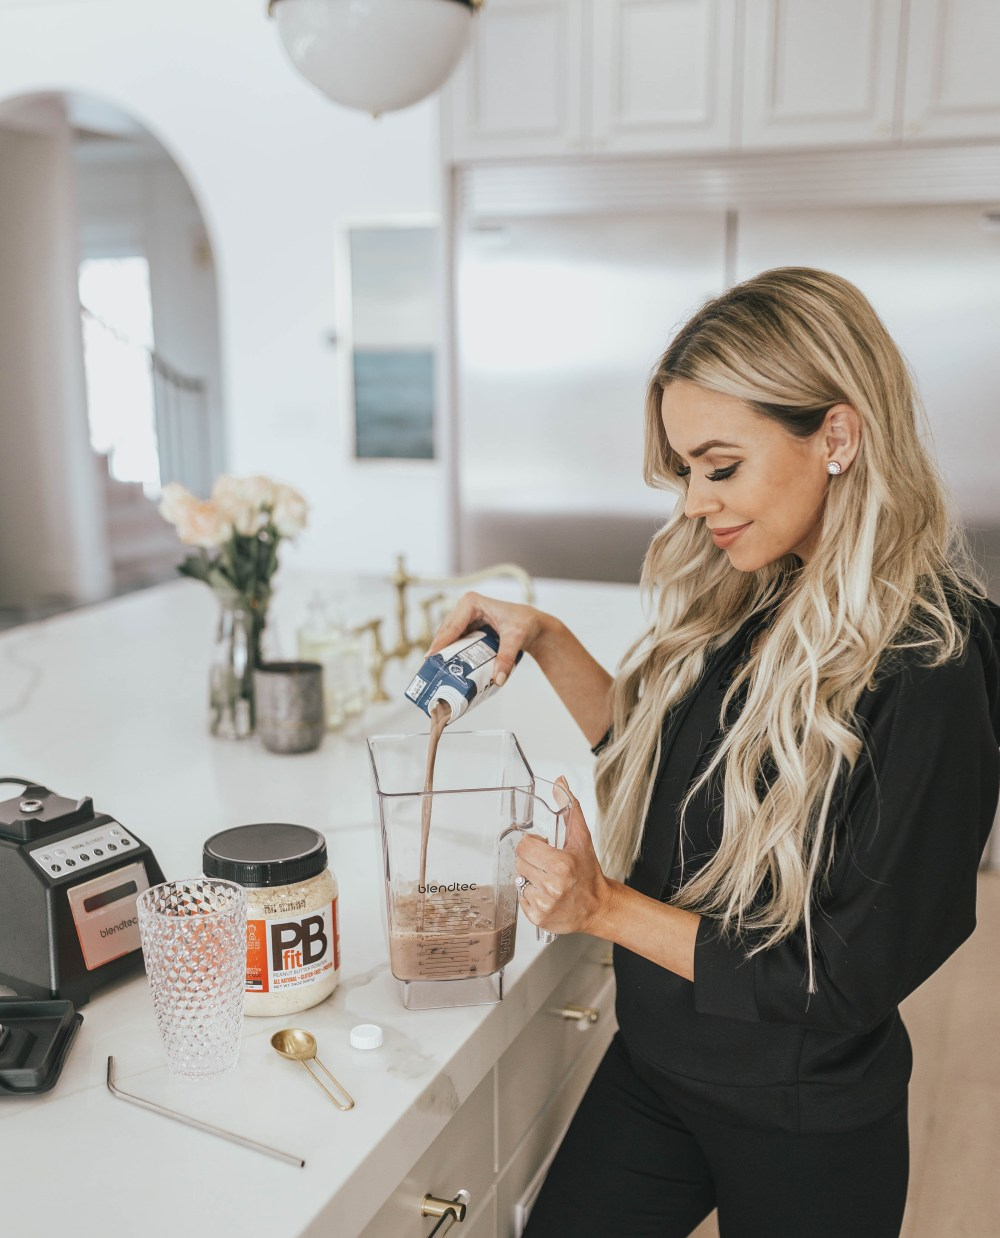 Sharing the recipe of my favorite protein shake that I have been loving for years! All the ingredients are clean and can all be bought at Walmart! We are keeping our health a priority in 2019. #womensfashion #proteinshake #newyearsresolution #healthyhabits